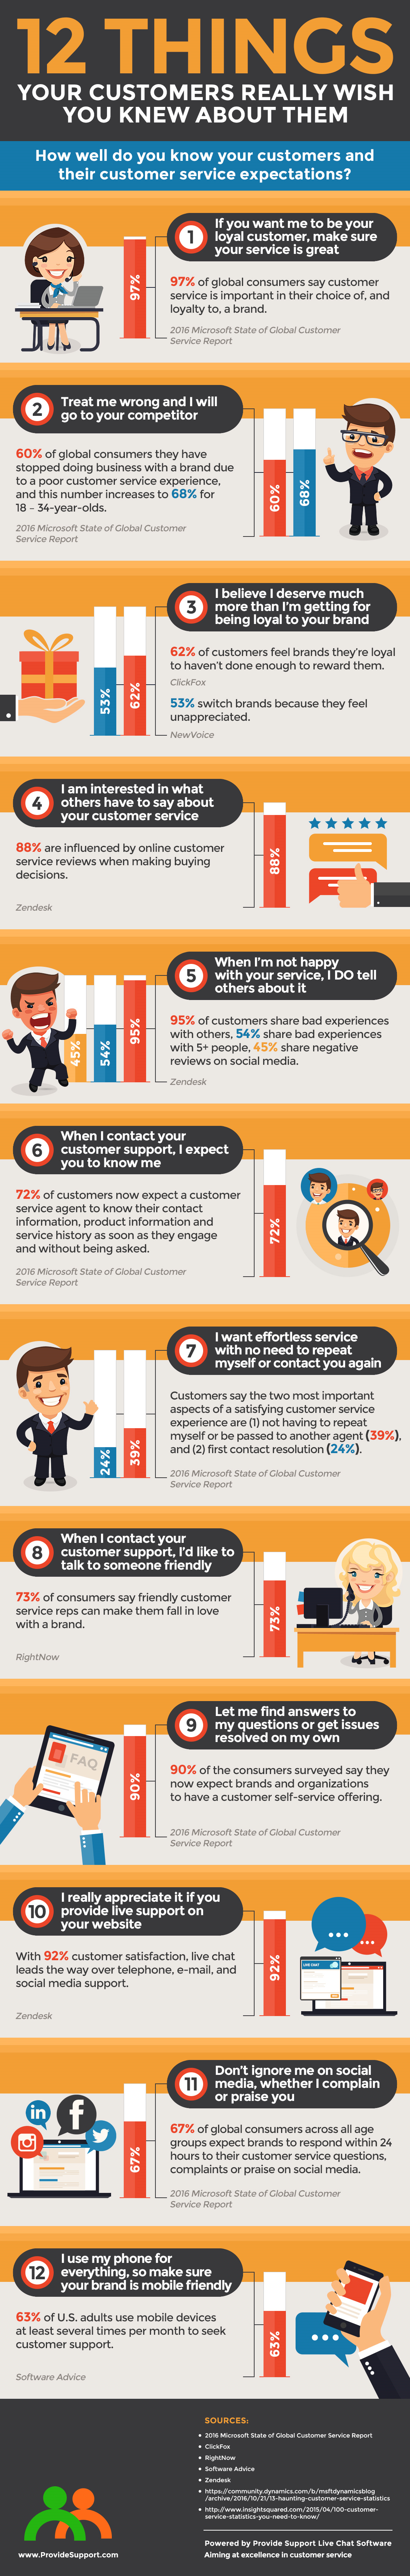 12 Things Your Customers Really Wish You Knew About Them